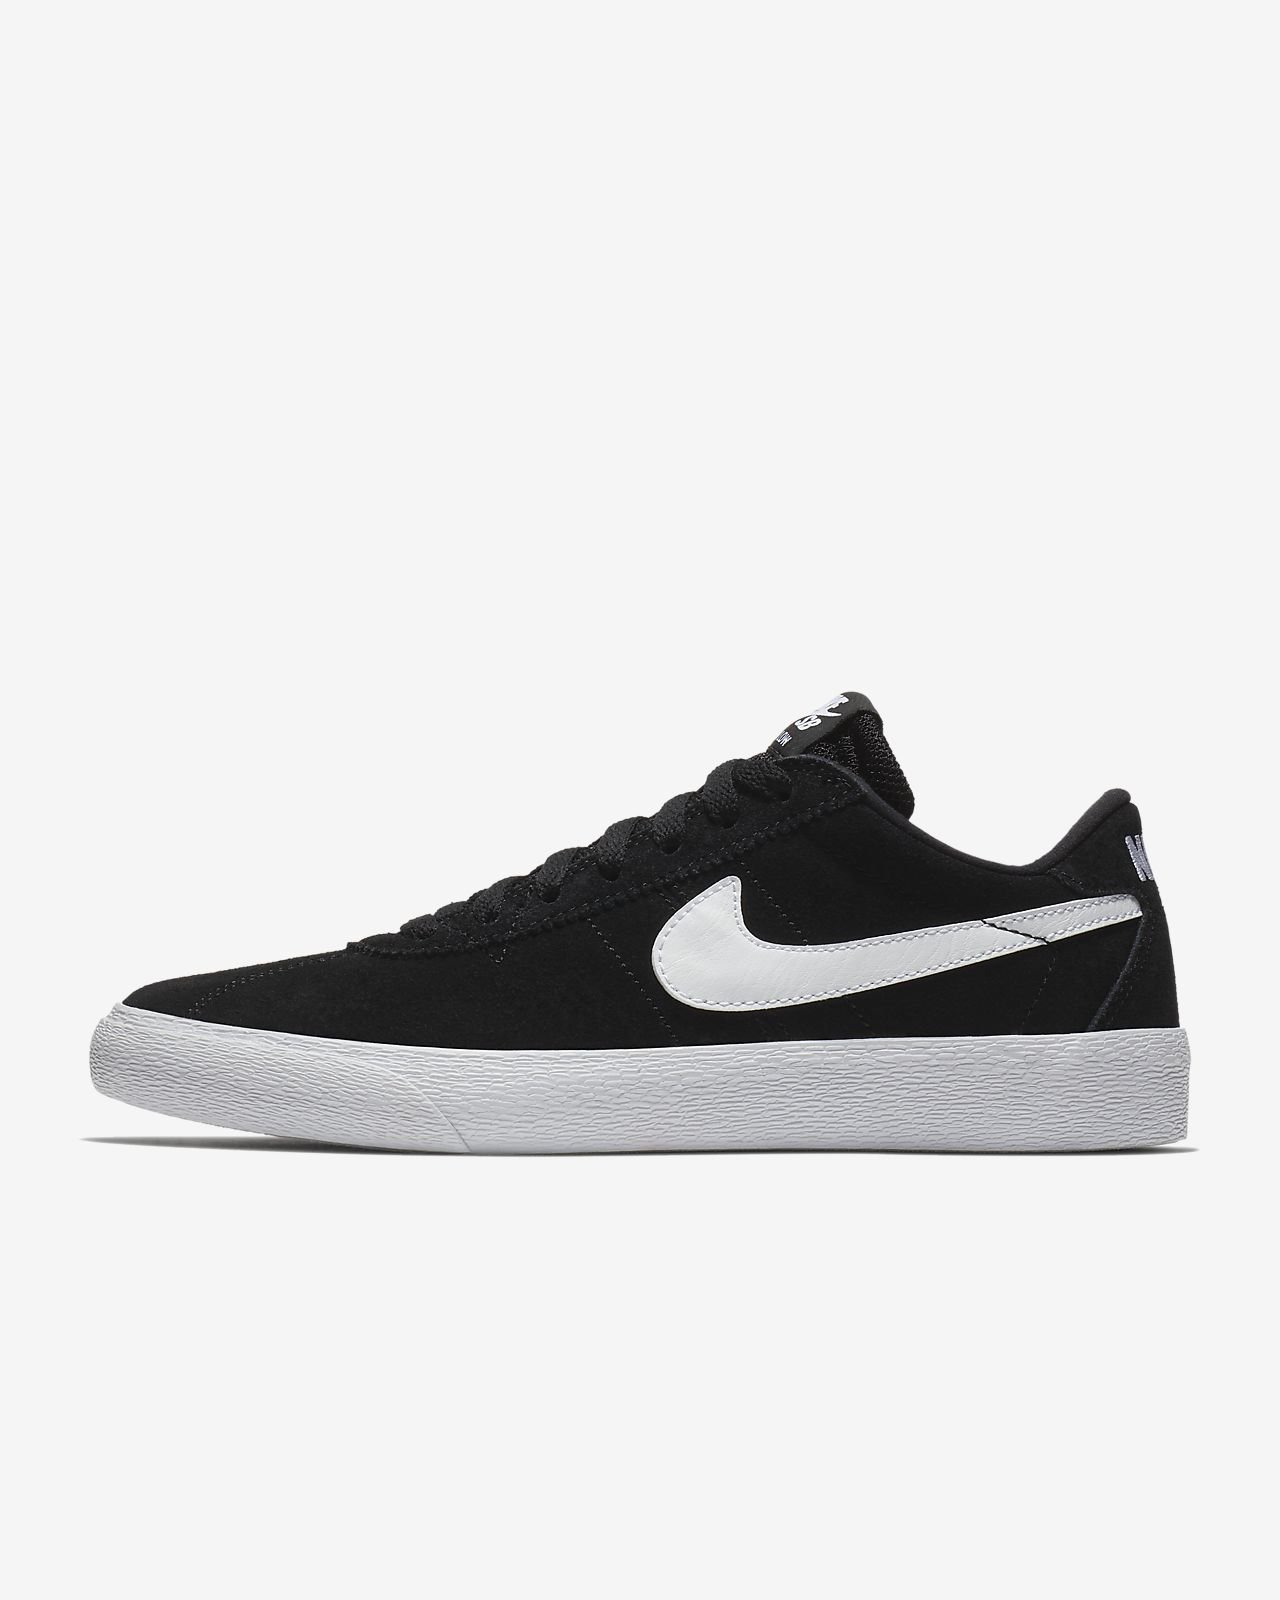 sports shoes 32c3f 97e9c ... Skateboardsko Nike SB Zoom Bruin Low för kvinnor